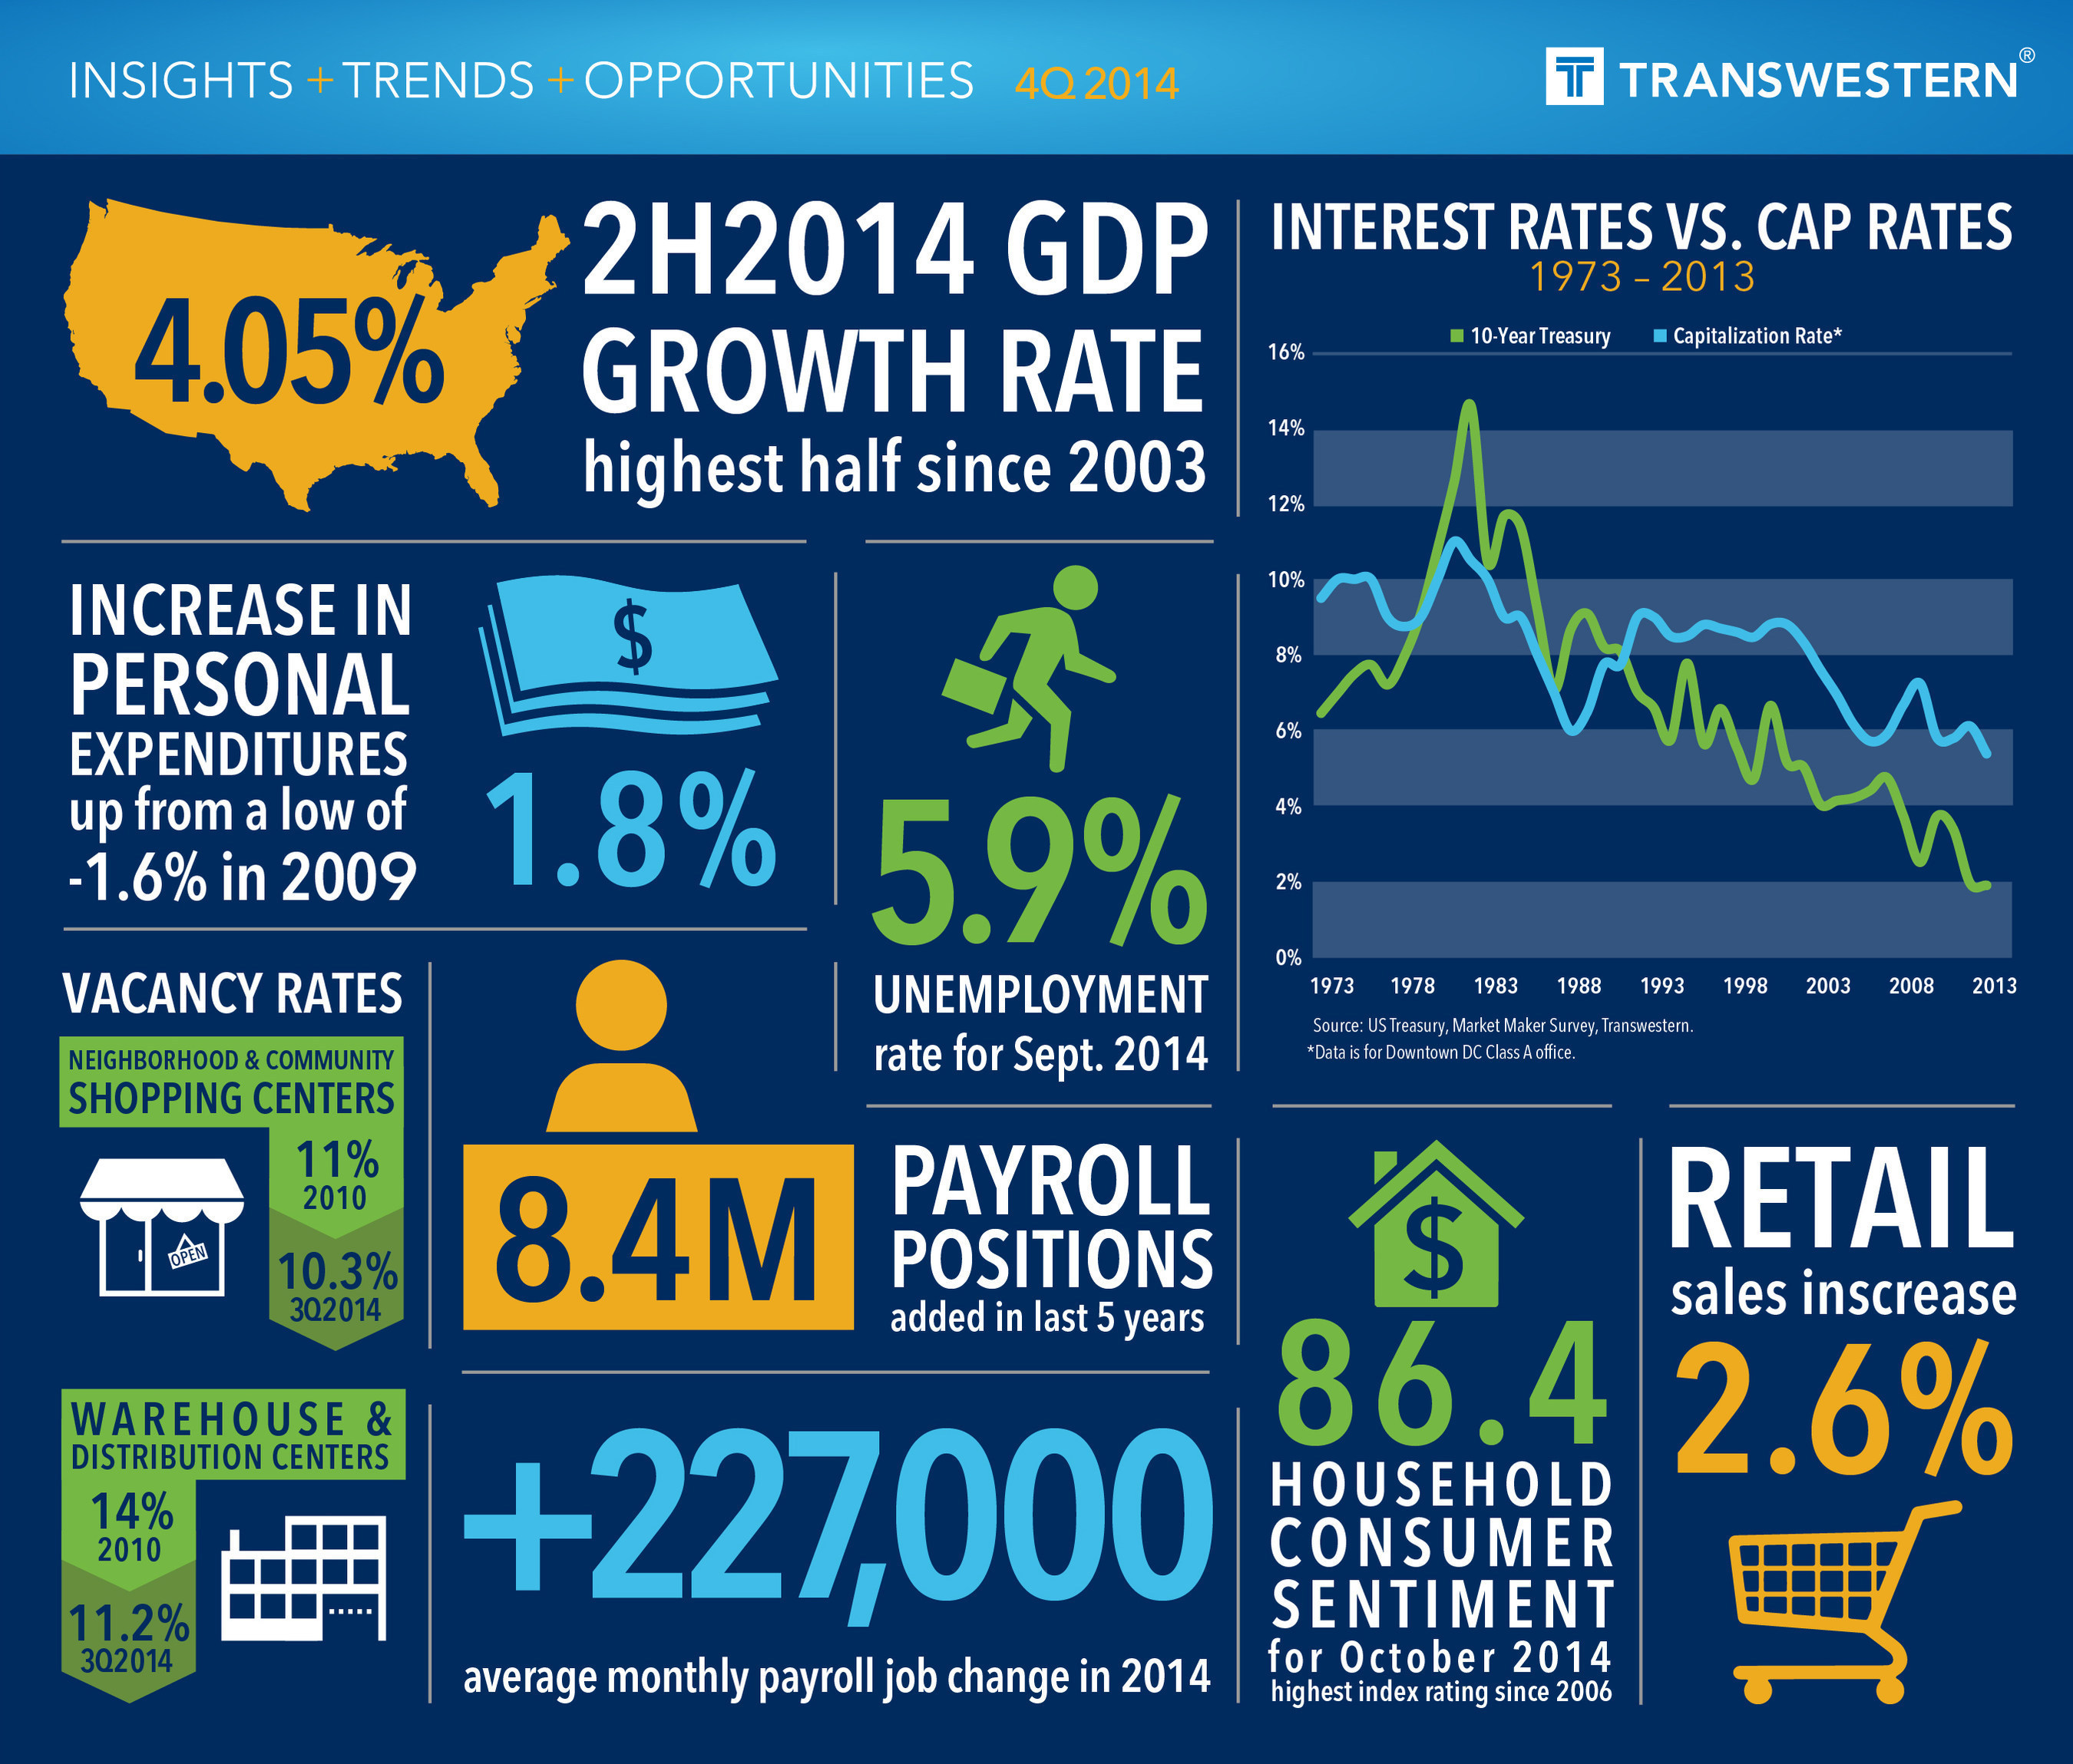 Rising consumer confidence expected to continue driving economy, retail and industrial real estate